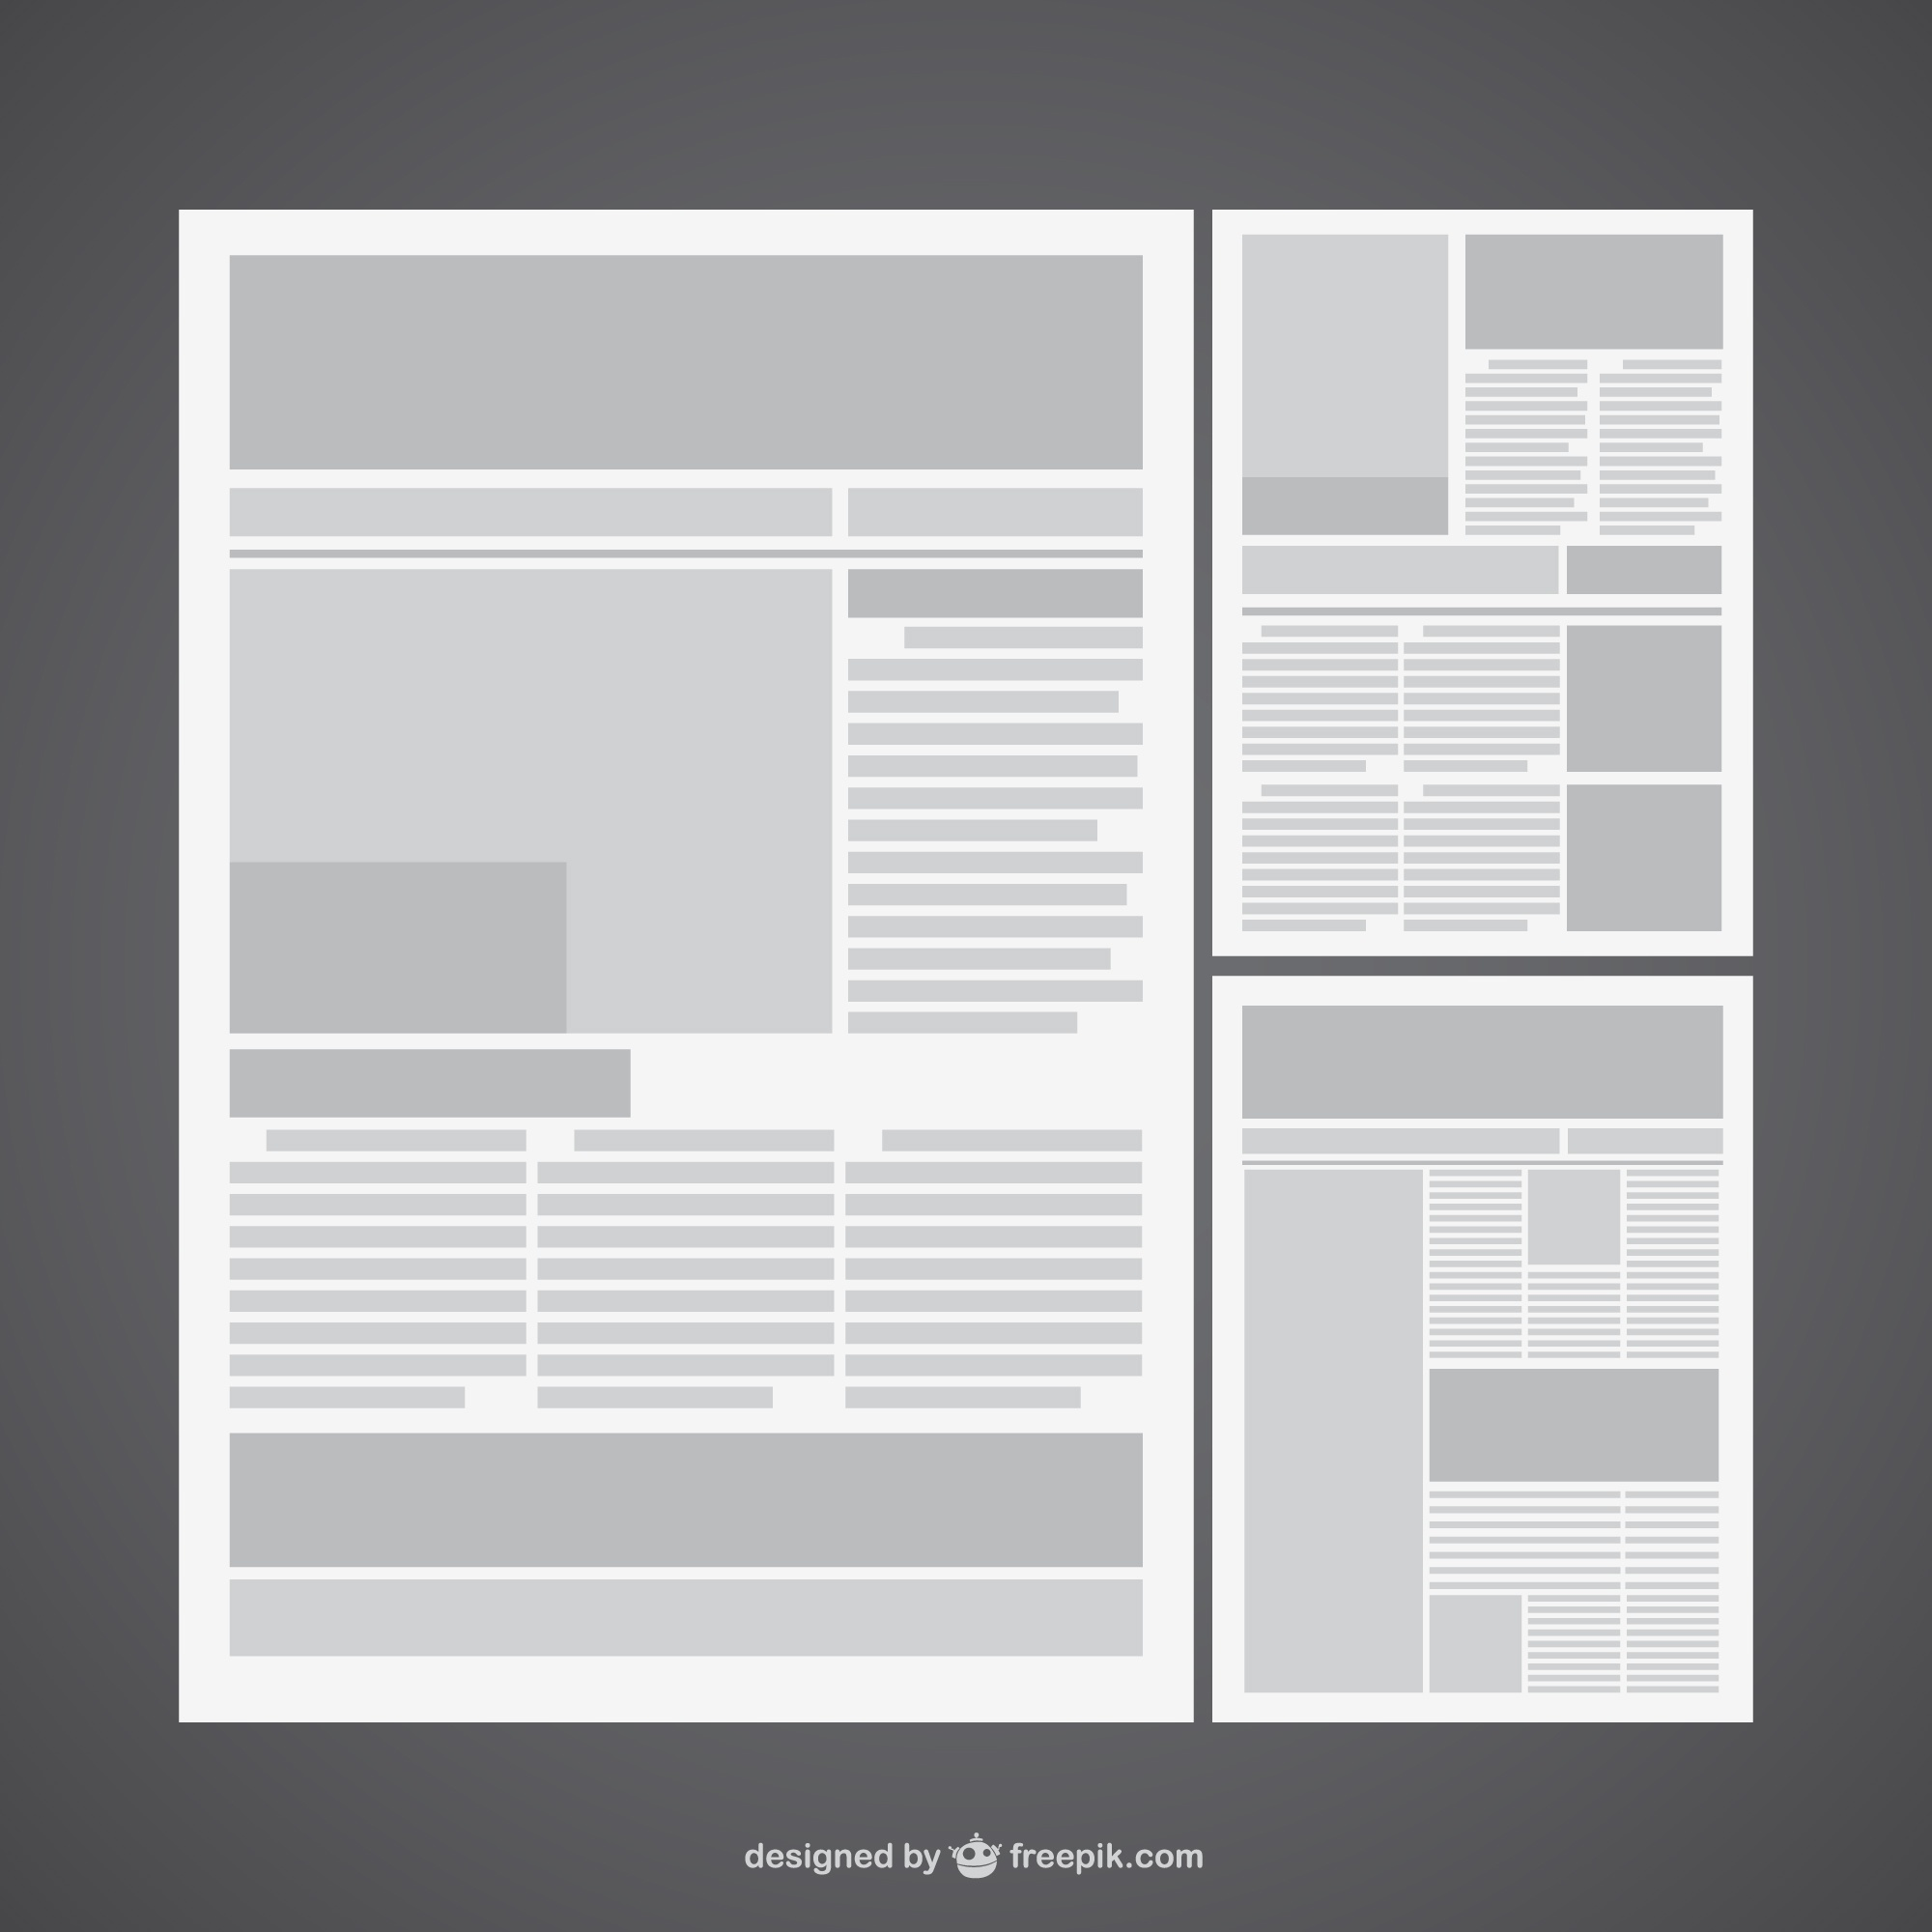 Newspaper vector layout